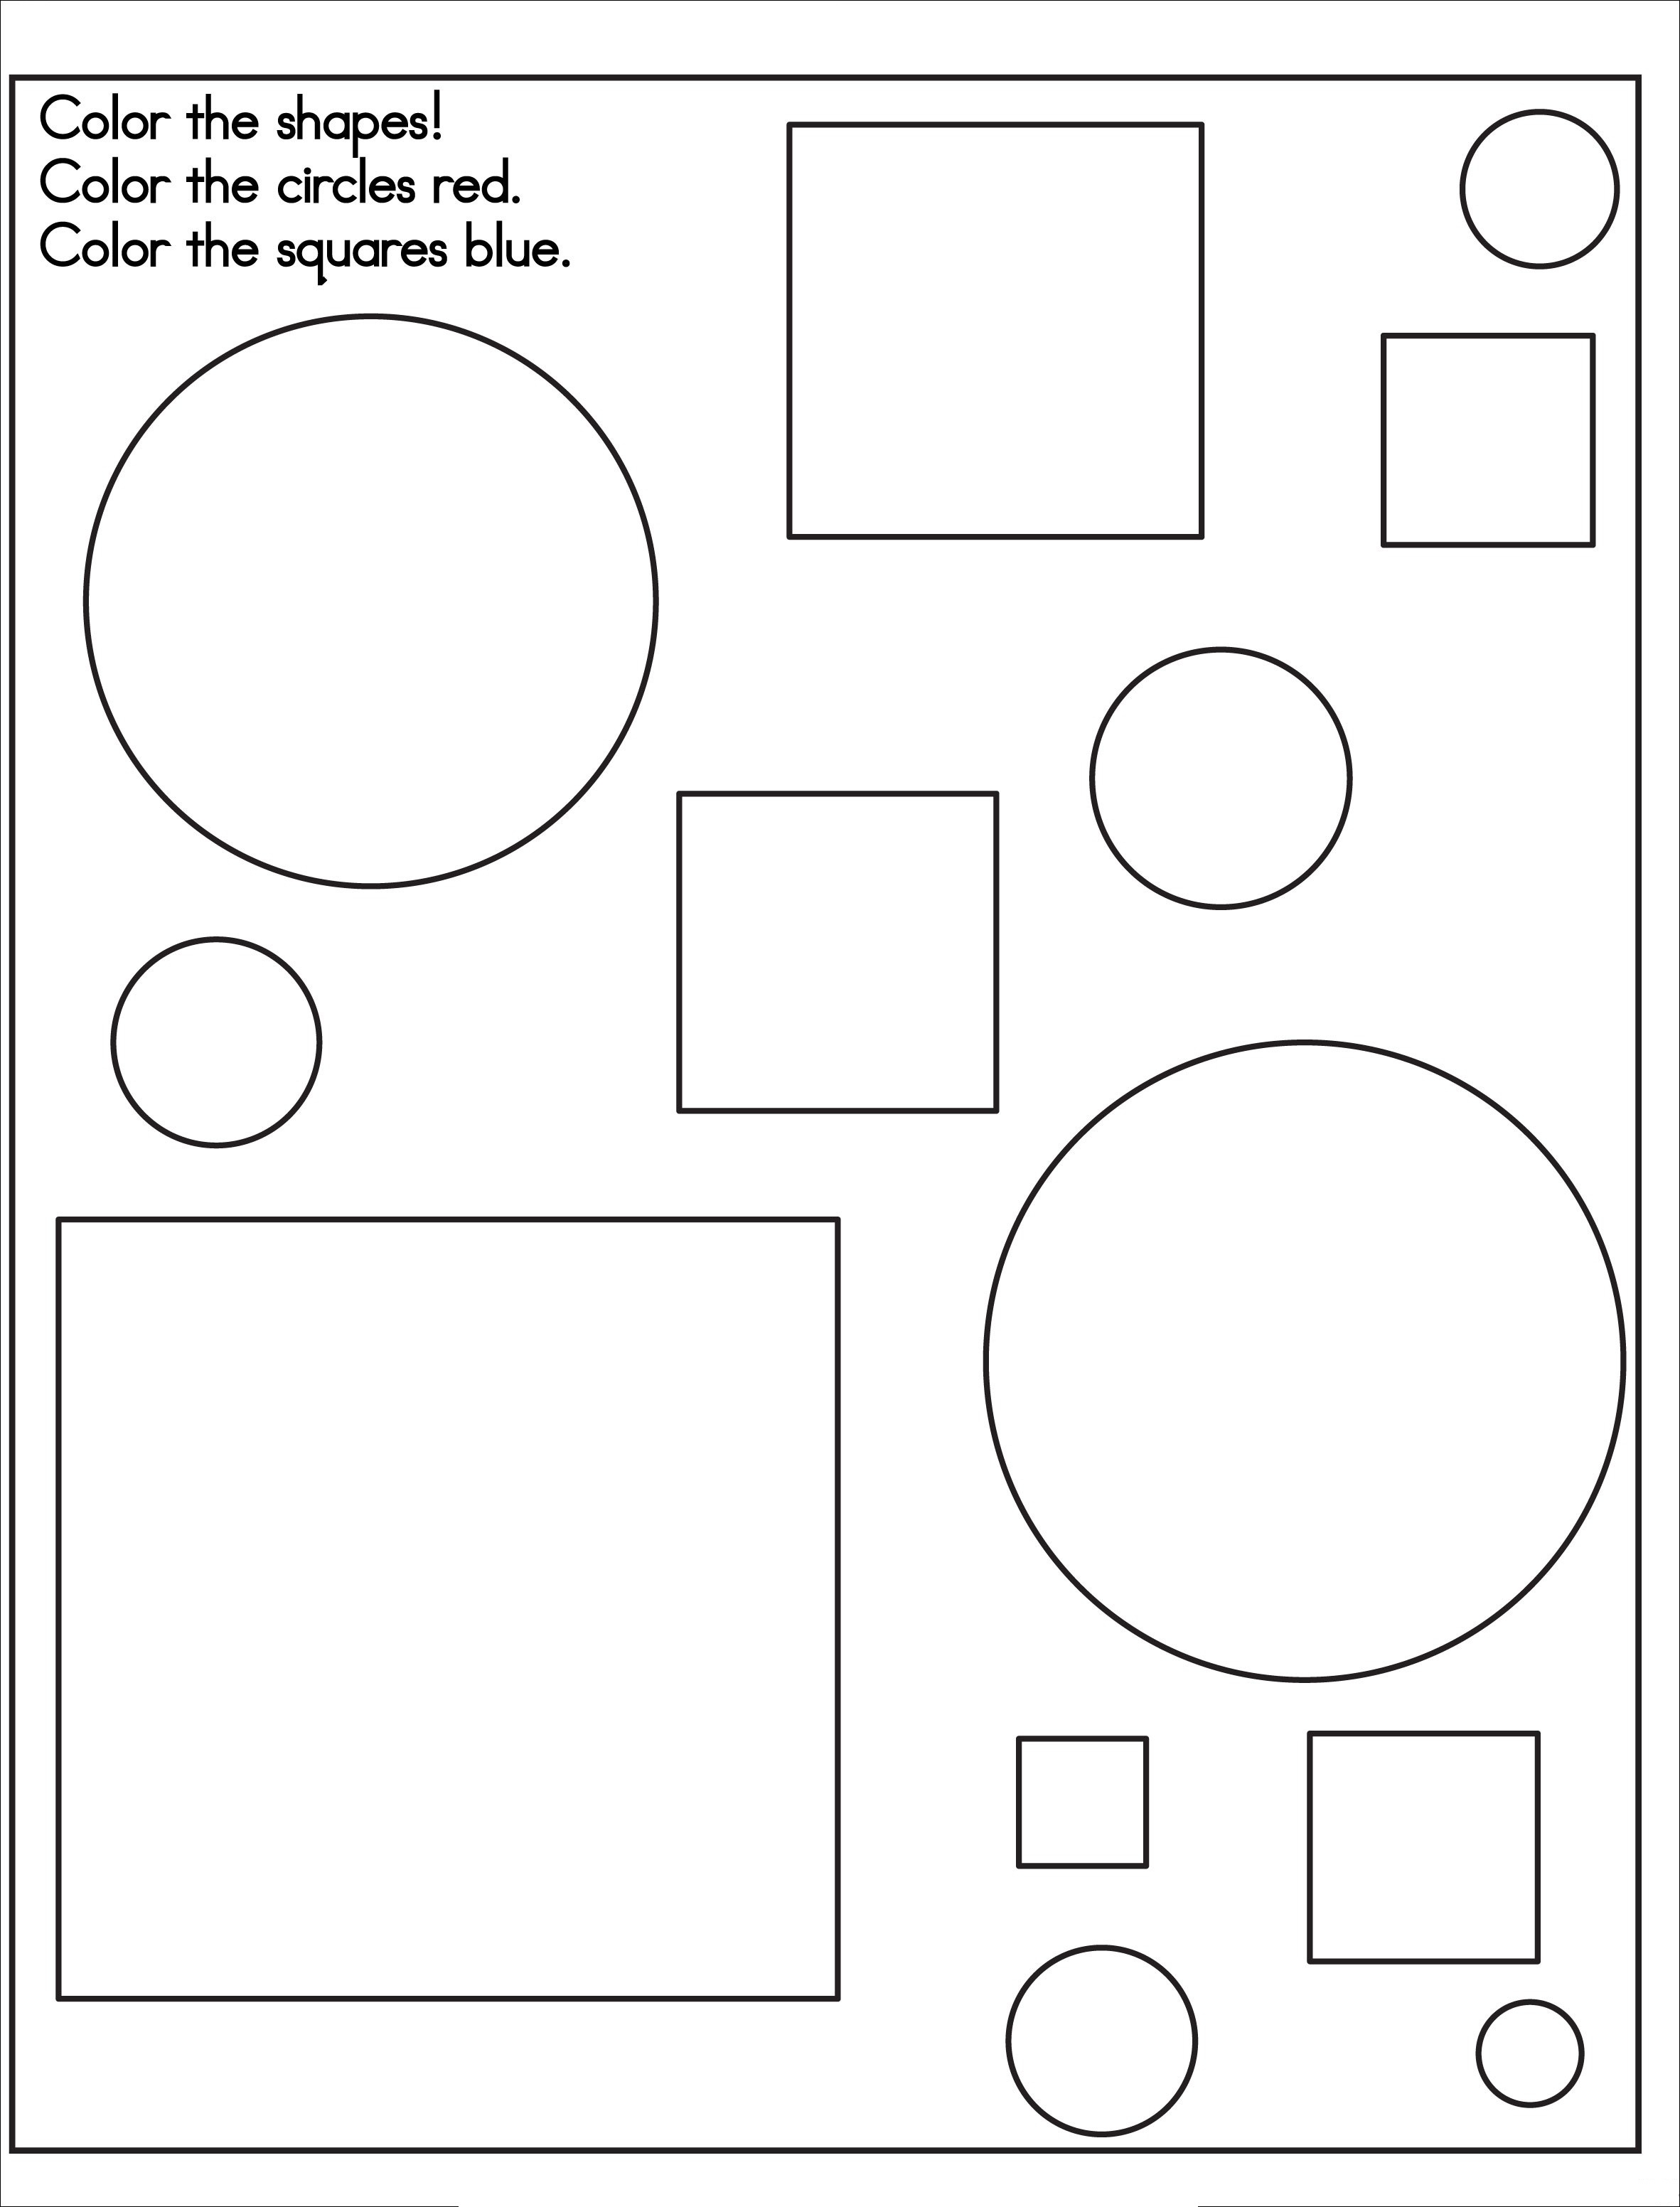 Attribute Shapes Printable Sheets Coloring Pages